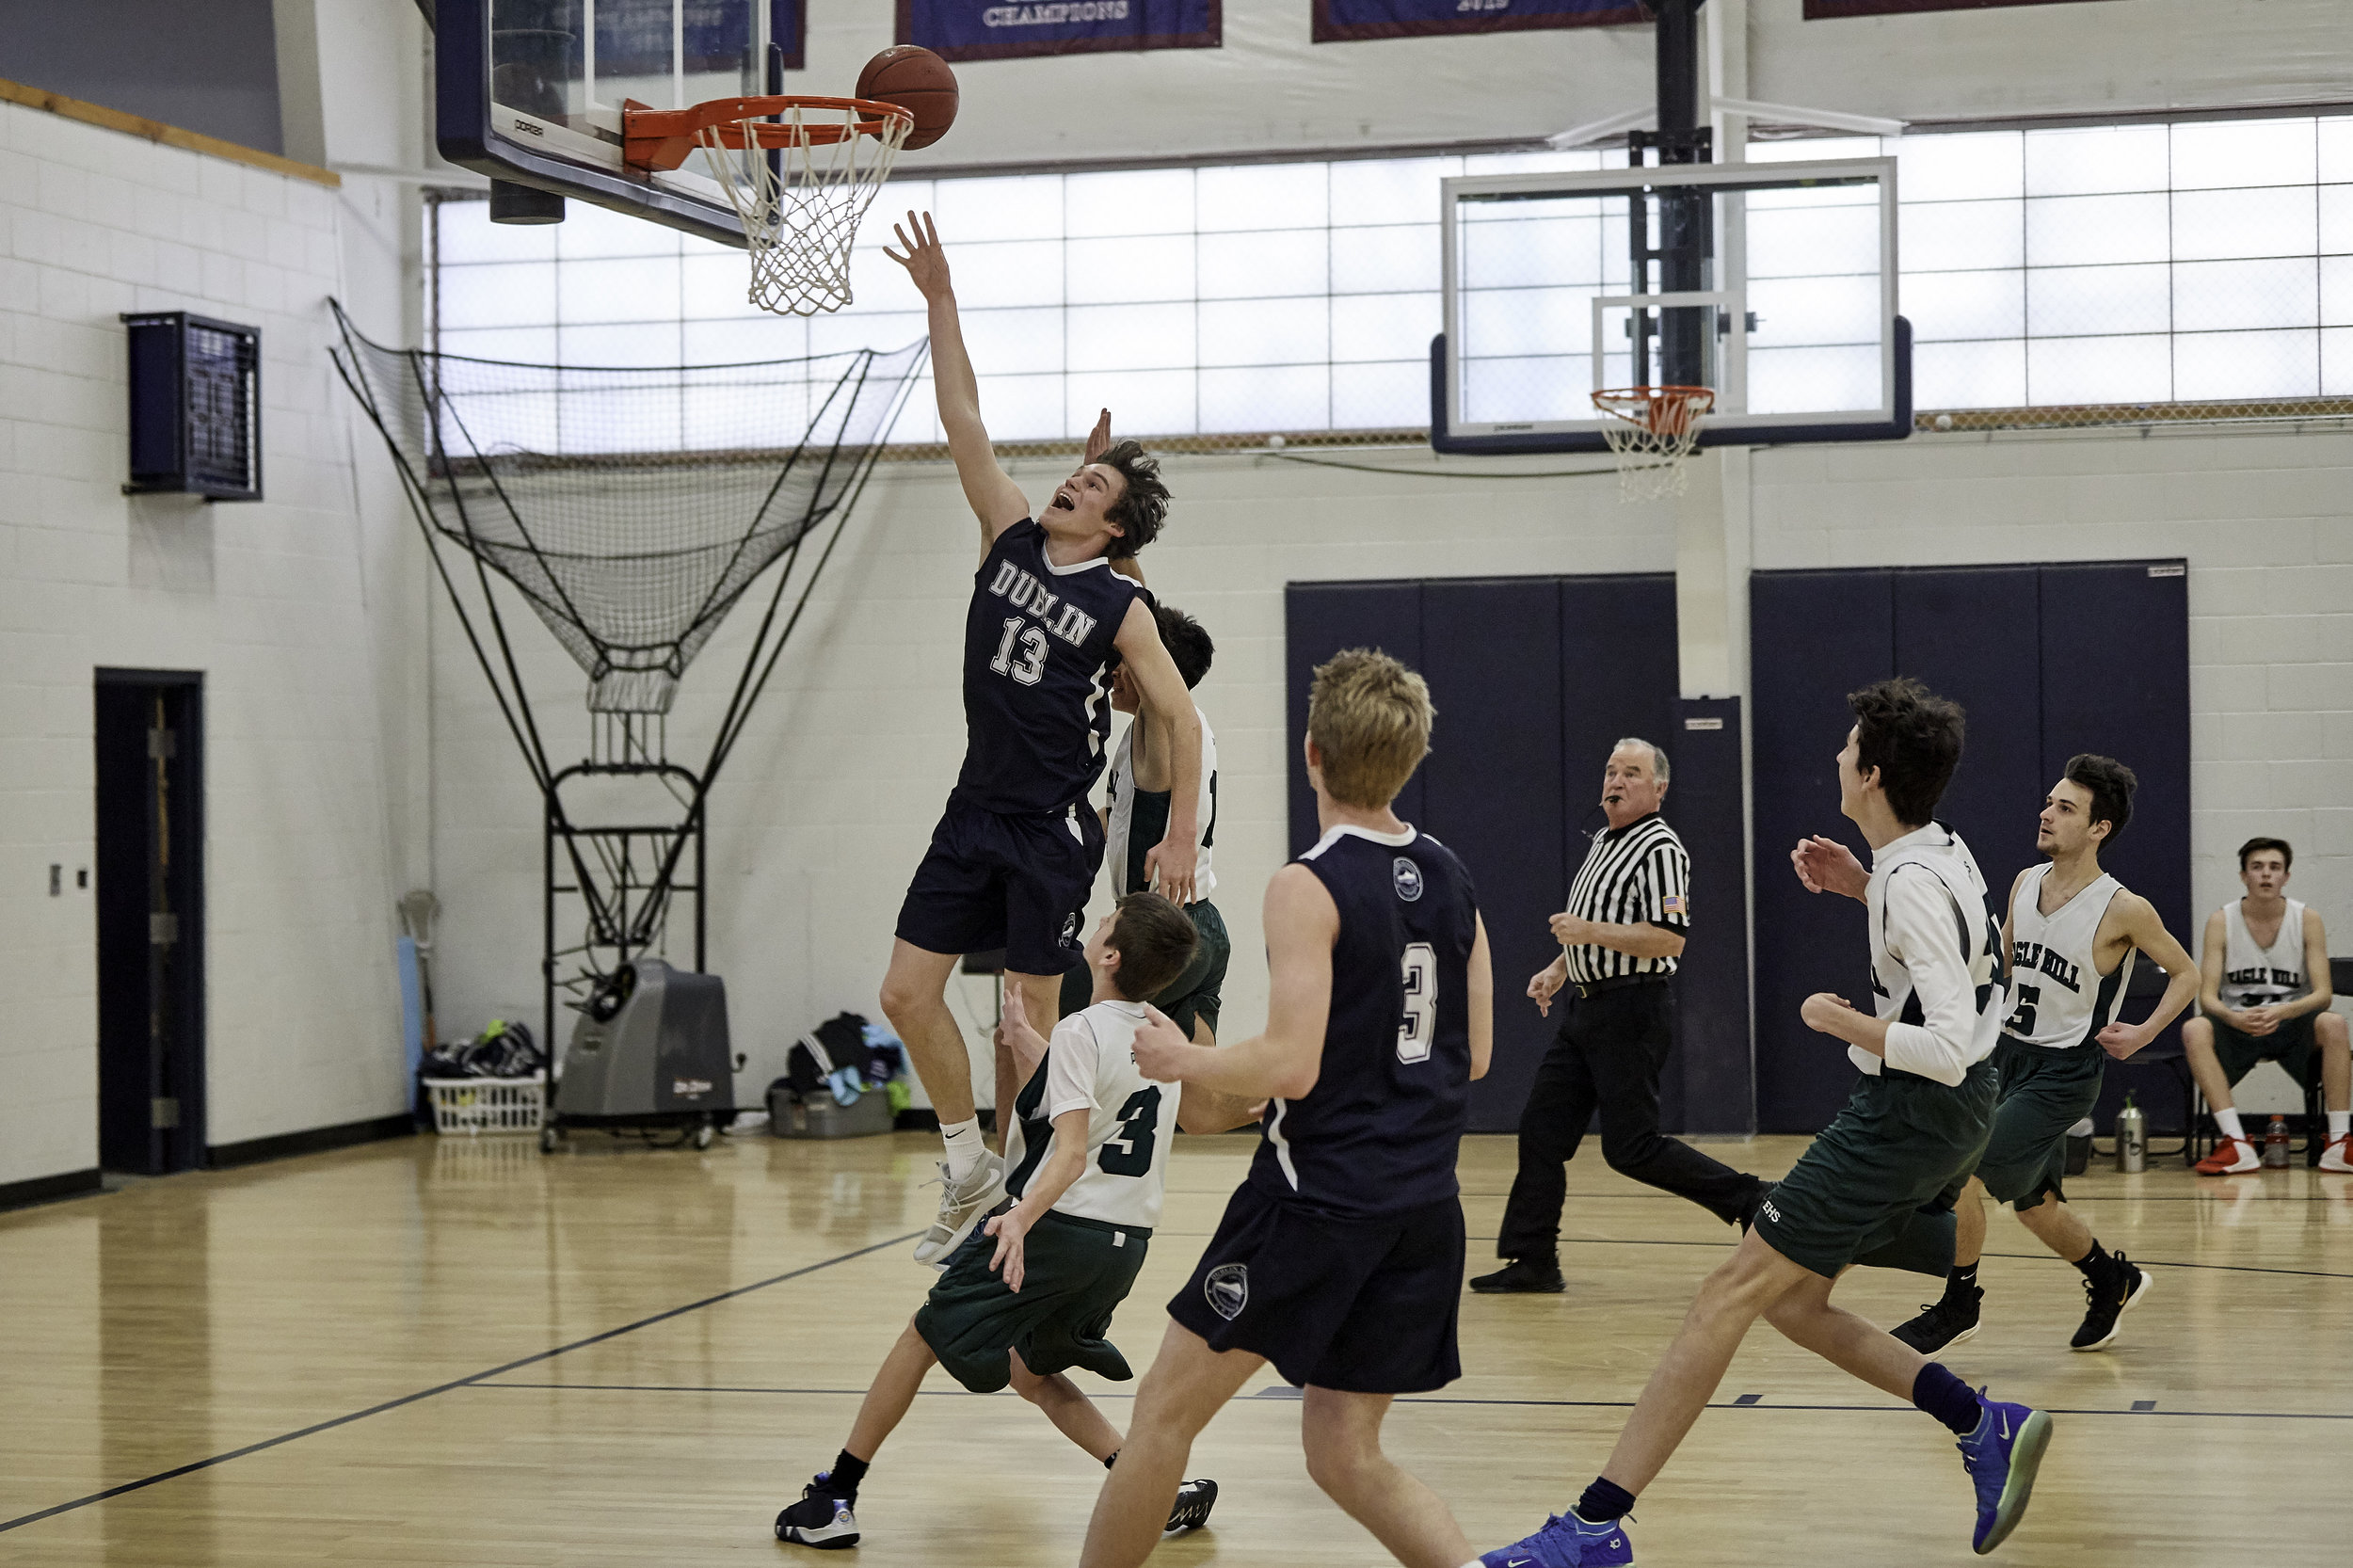 Boys Varsity Basketball vs. Eagle Hill School JV at RVAL Tournament - February 11, 2019 - 167784.jpg